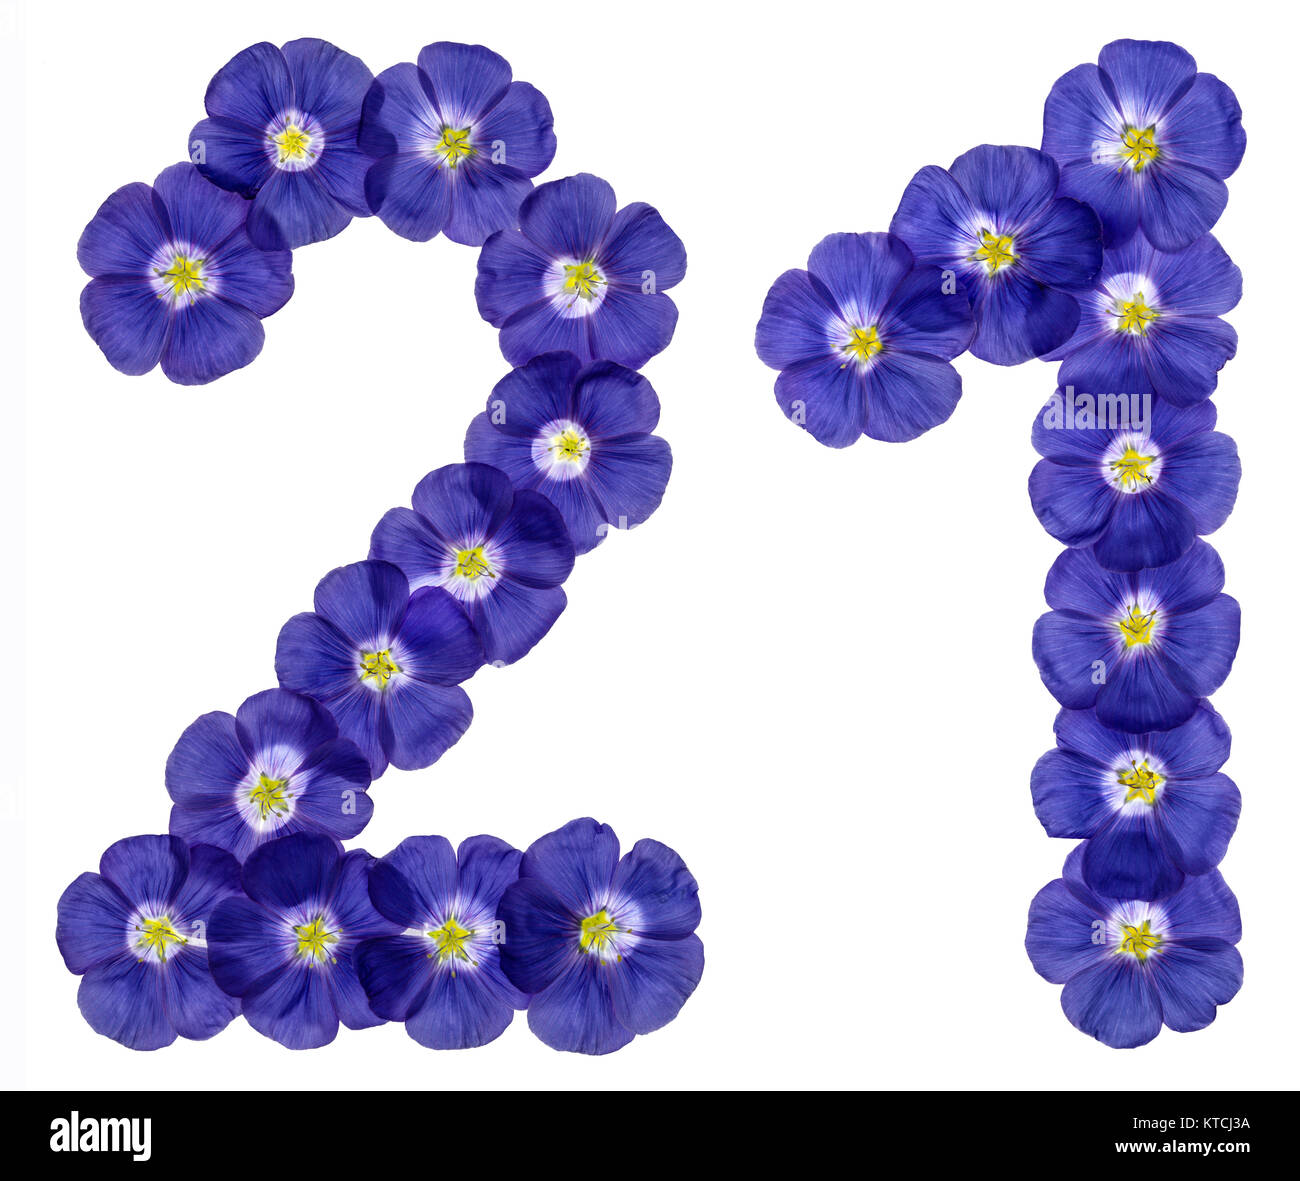 Arabic numeral 21, twenty one, twenty, from blue flowers of flax, isolated on white background Stock Photo